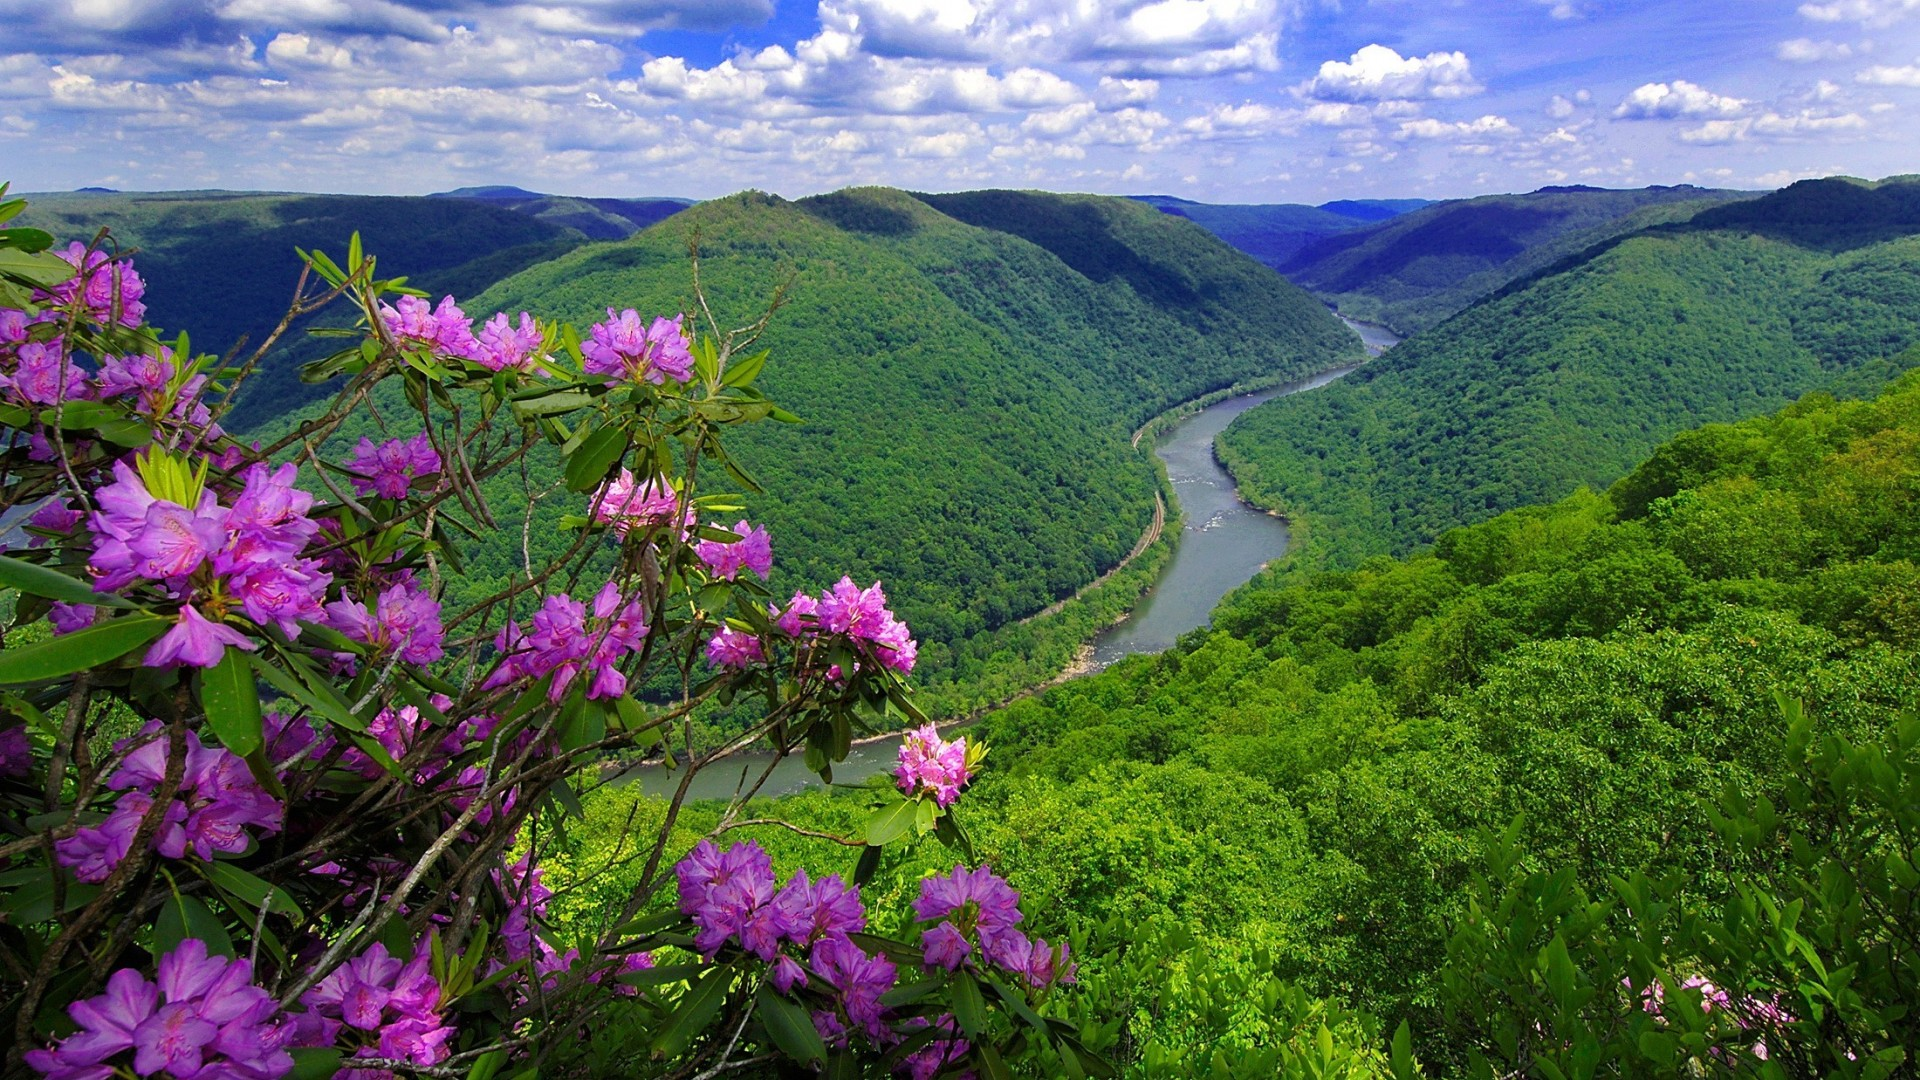 Free Download Wallpaper Picturesque Kanawha River In The